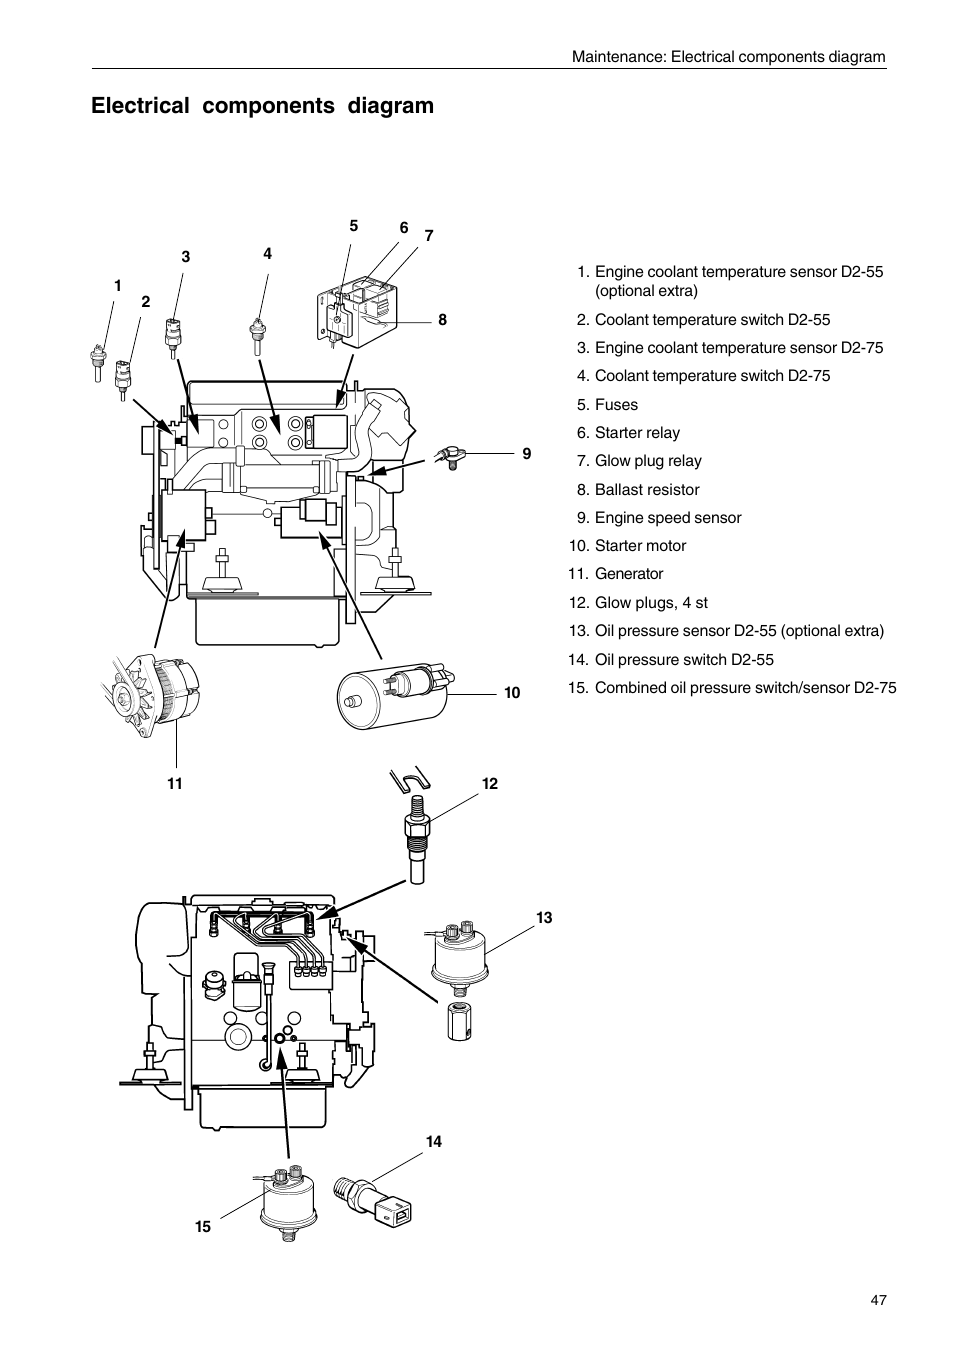 Electrical components diagram | Volvo Penta D2-75 User Manual | Page 49 / 68 | Volvo Penta D2 55 Wiring Diagram |  | Manuals Directory